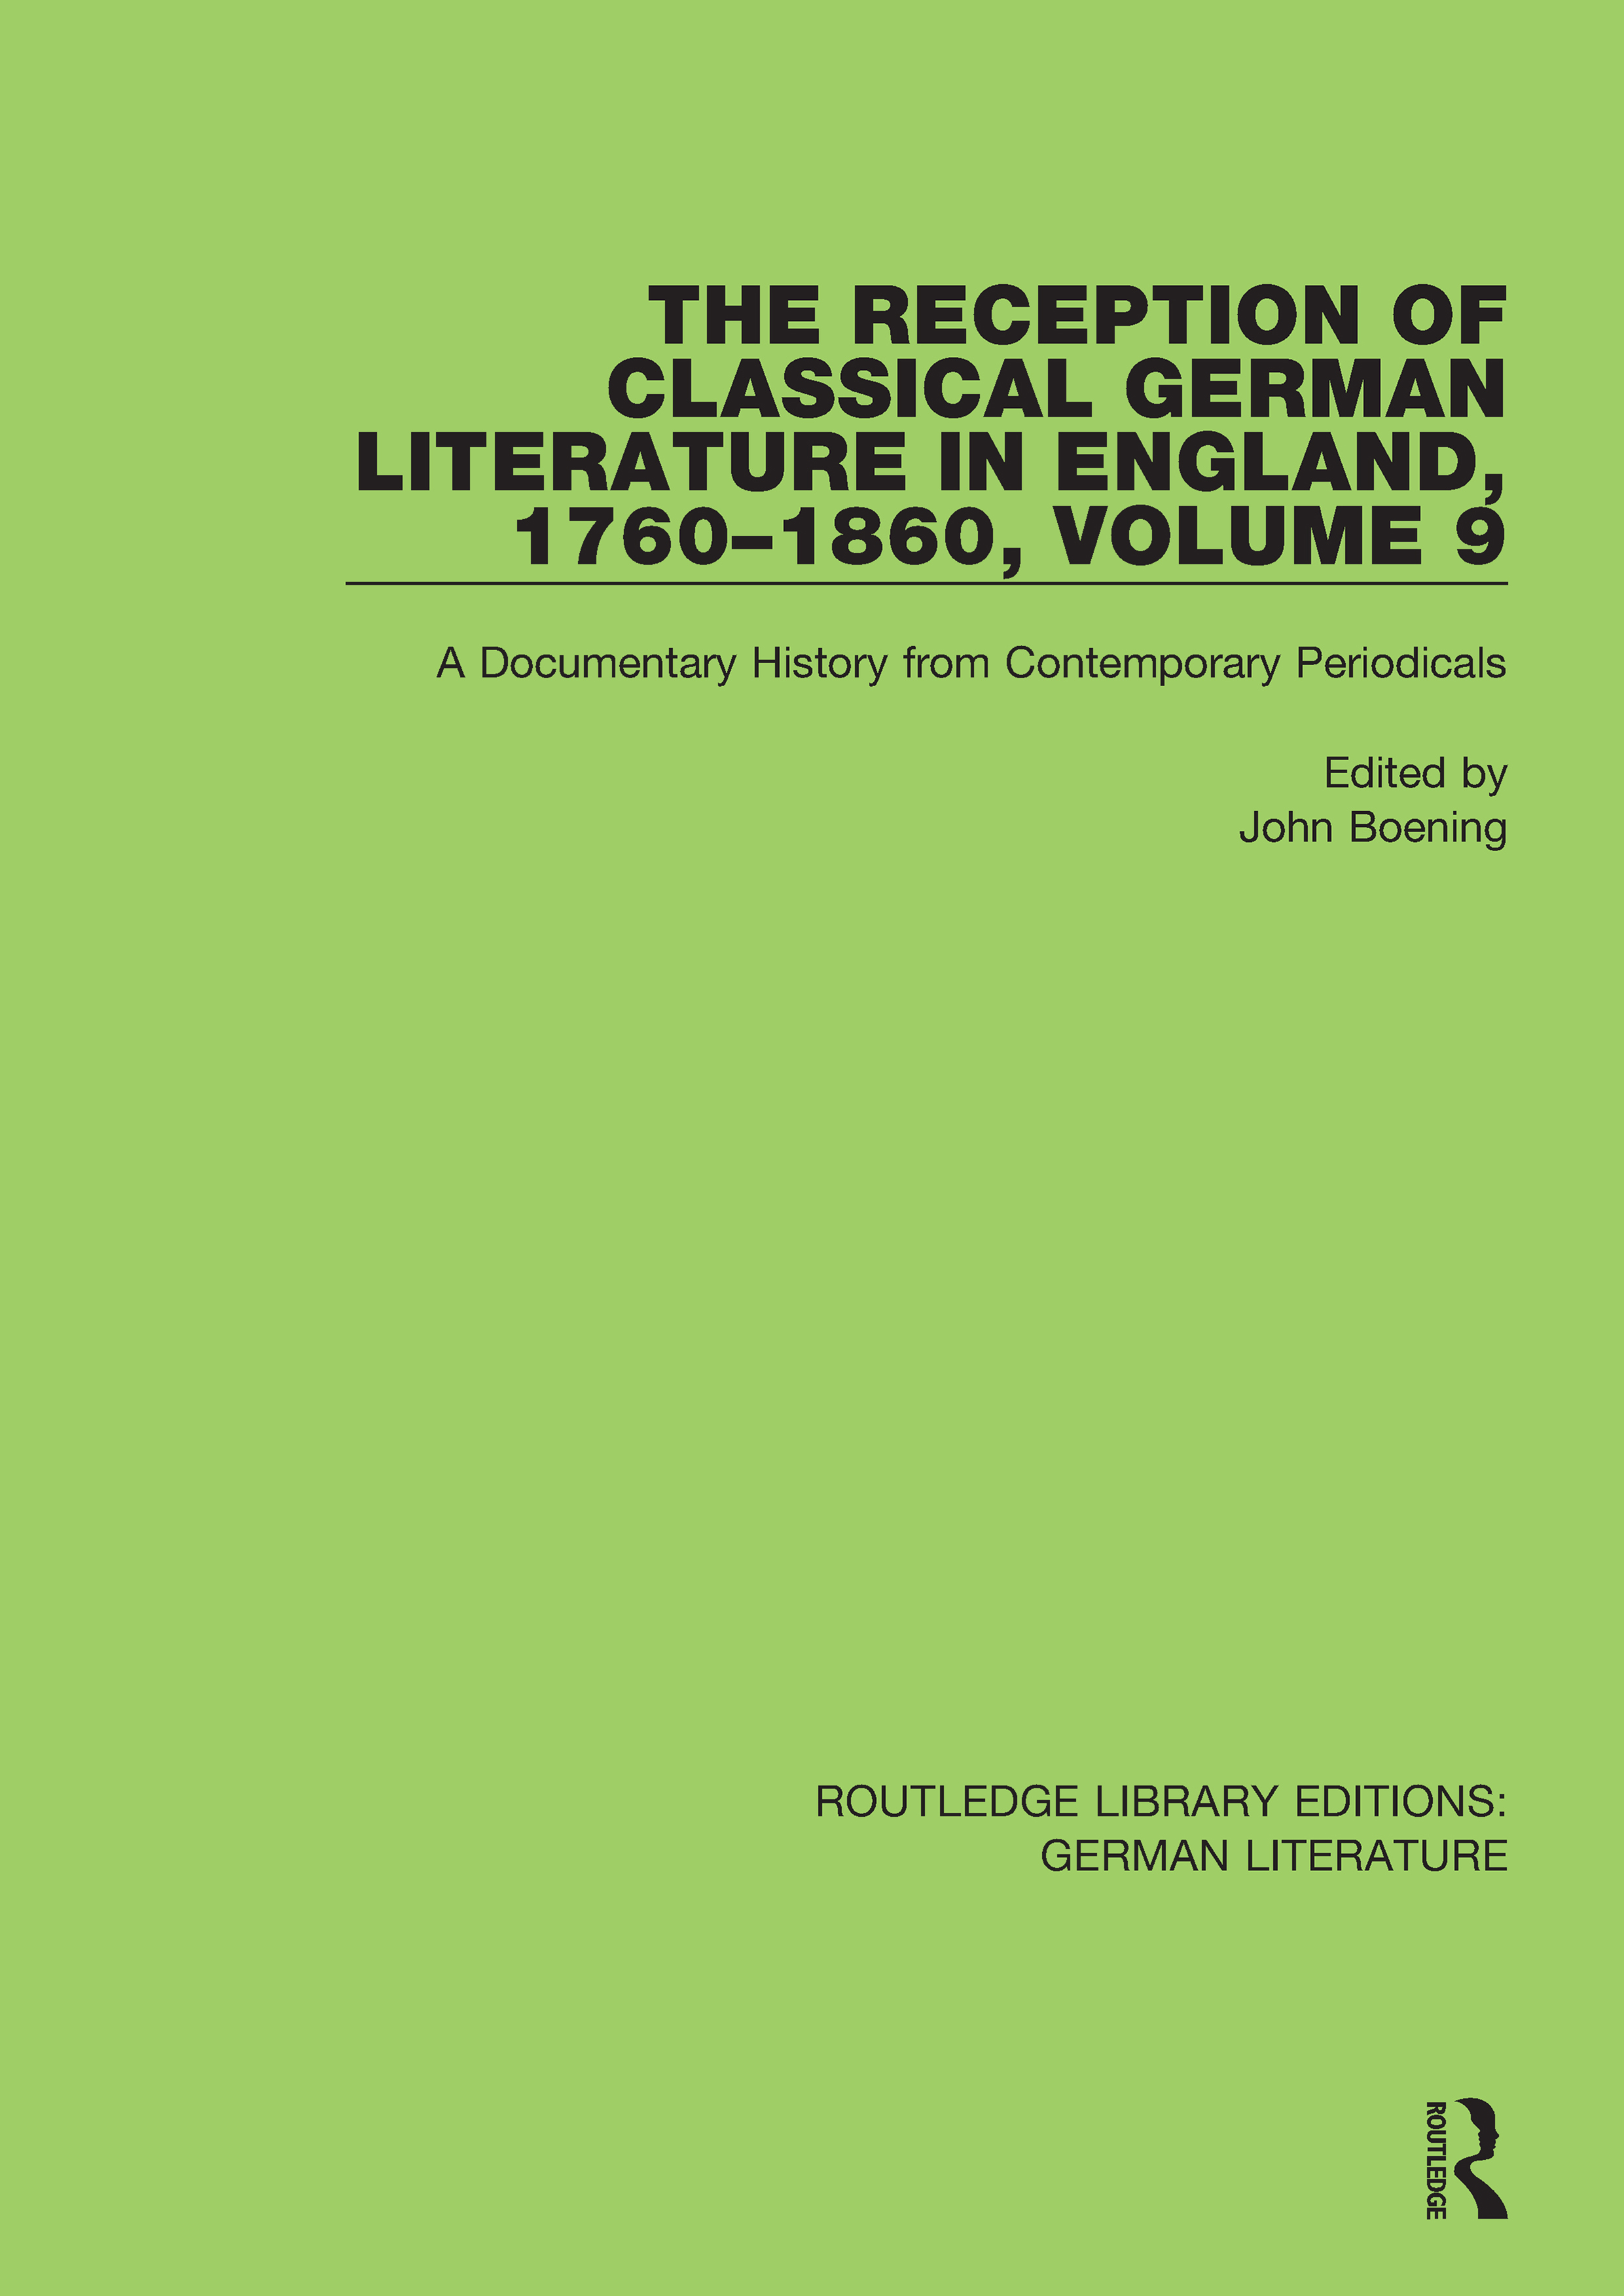 The Reception of Classical German Literature in England, 1760-1860, Volume 9: A Documentary History from Contemporary Periodicals book cover